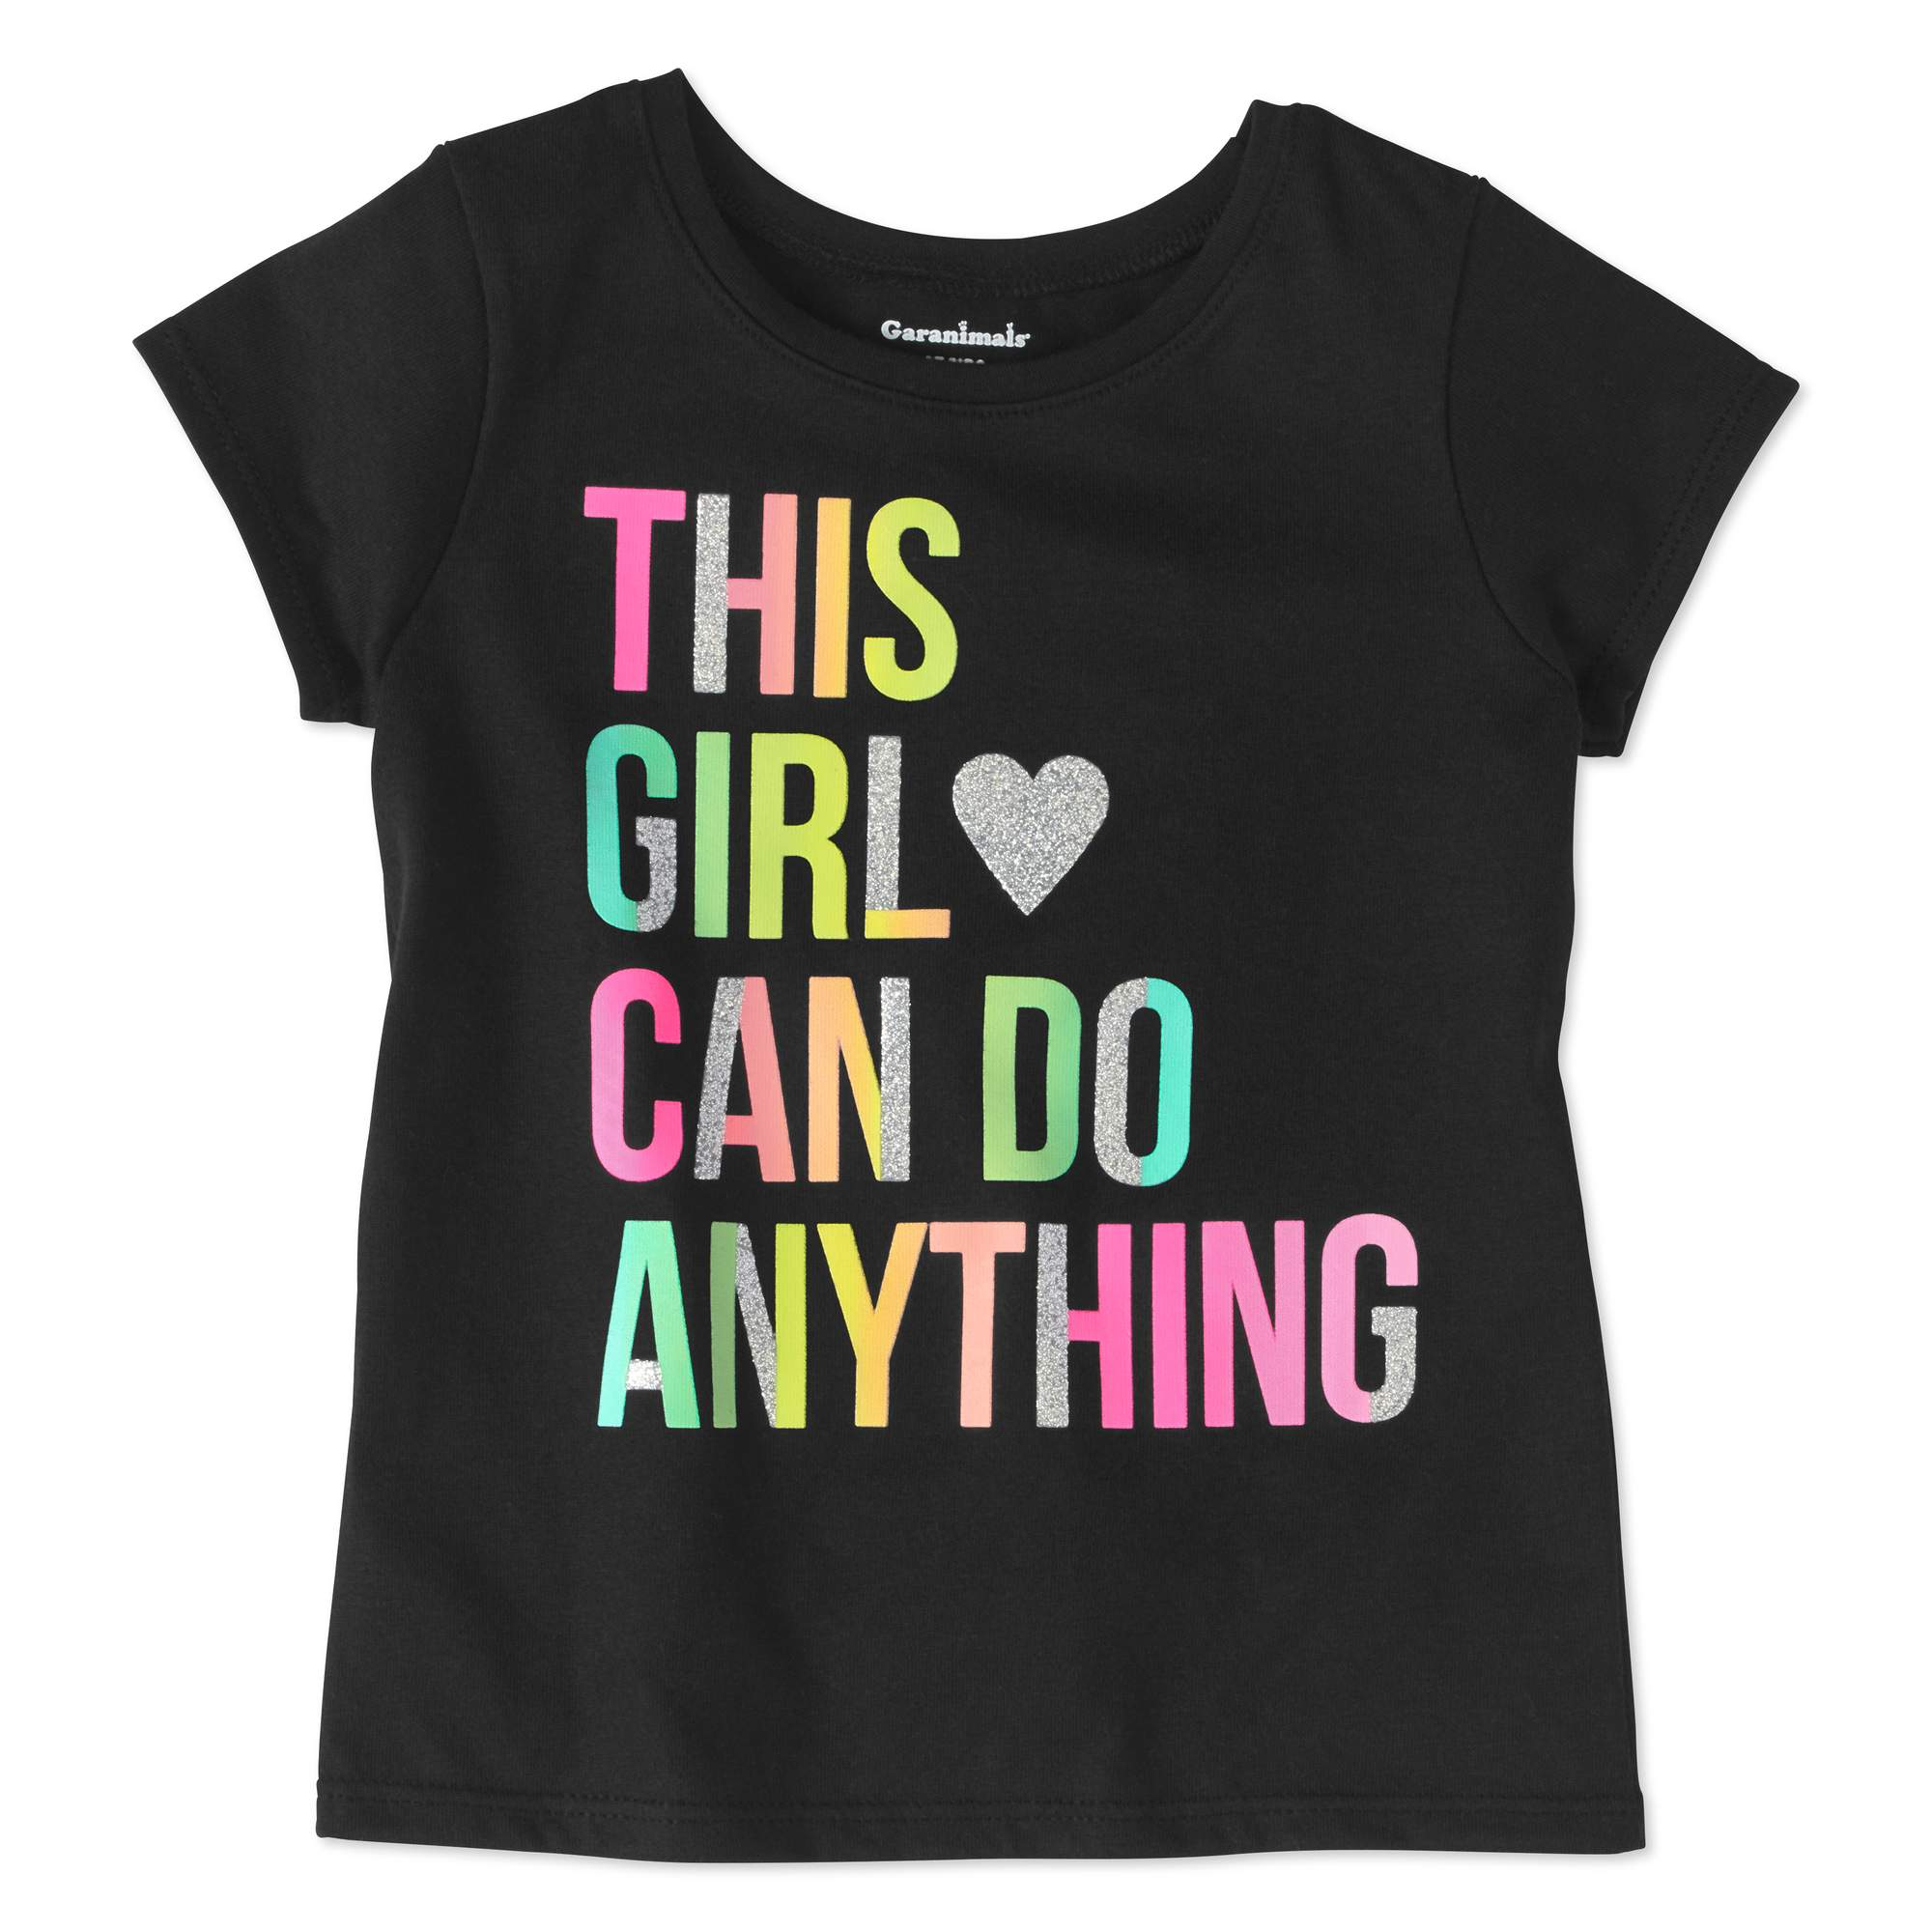 Garanimals Toddler Girls' Short Sleeve Graphic T-Shirt